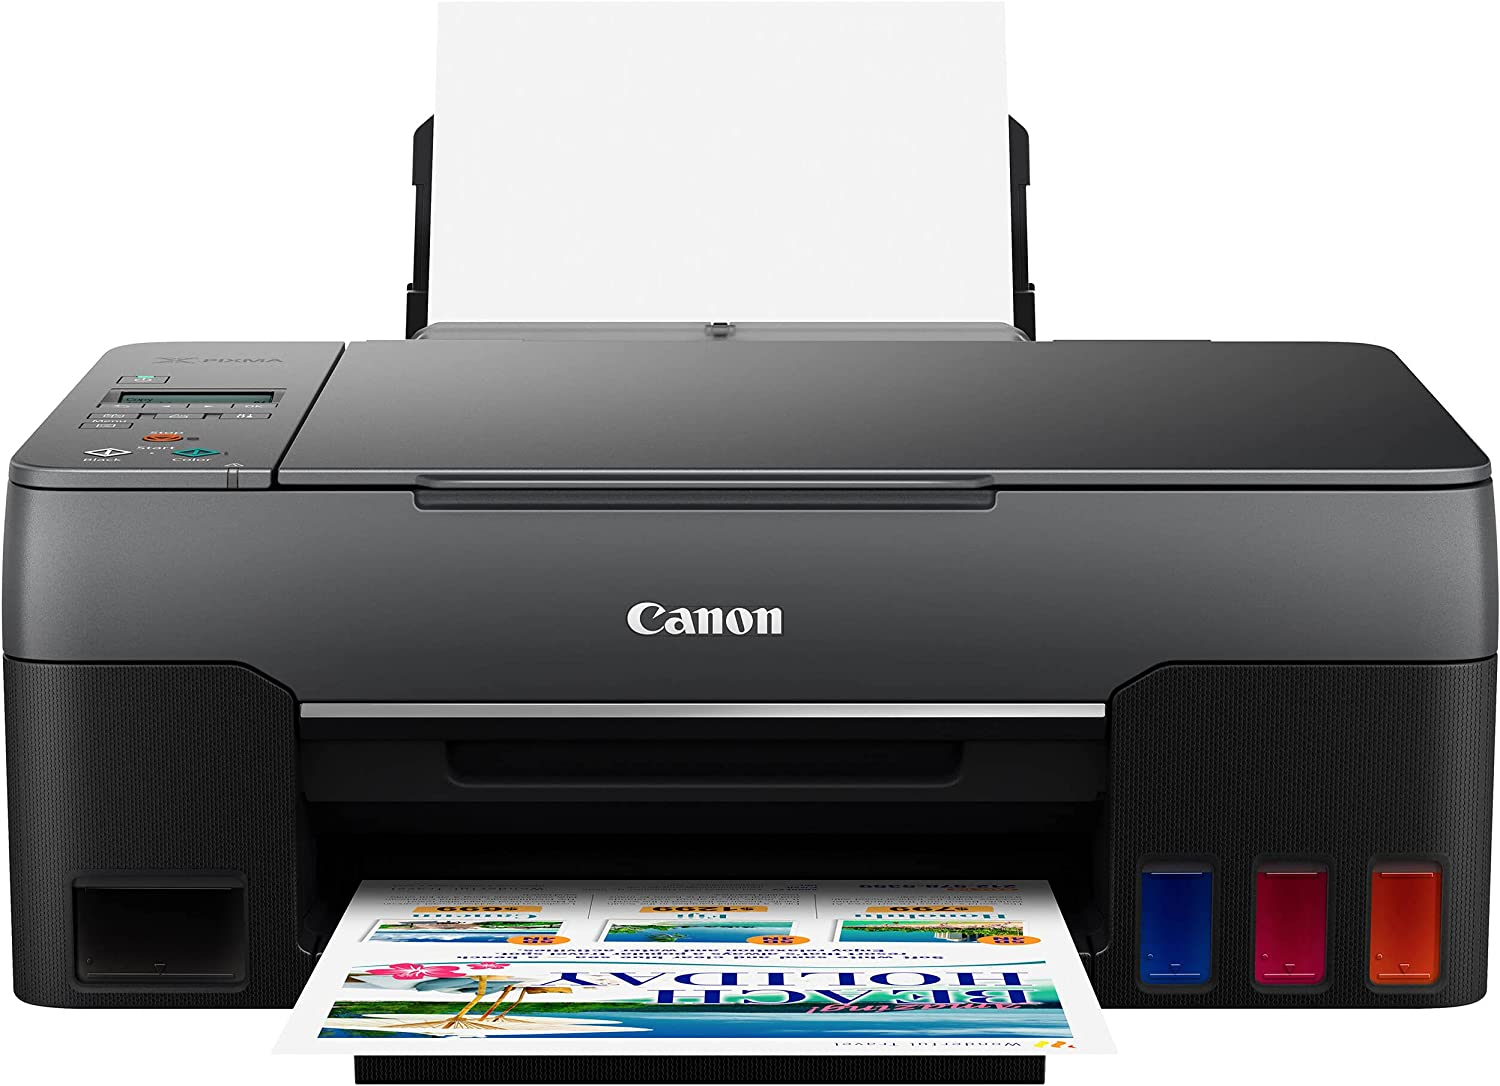 Canon PIXMA excellence G2259 MegaTank All-in-One High-Volume Wired Color Su At the price